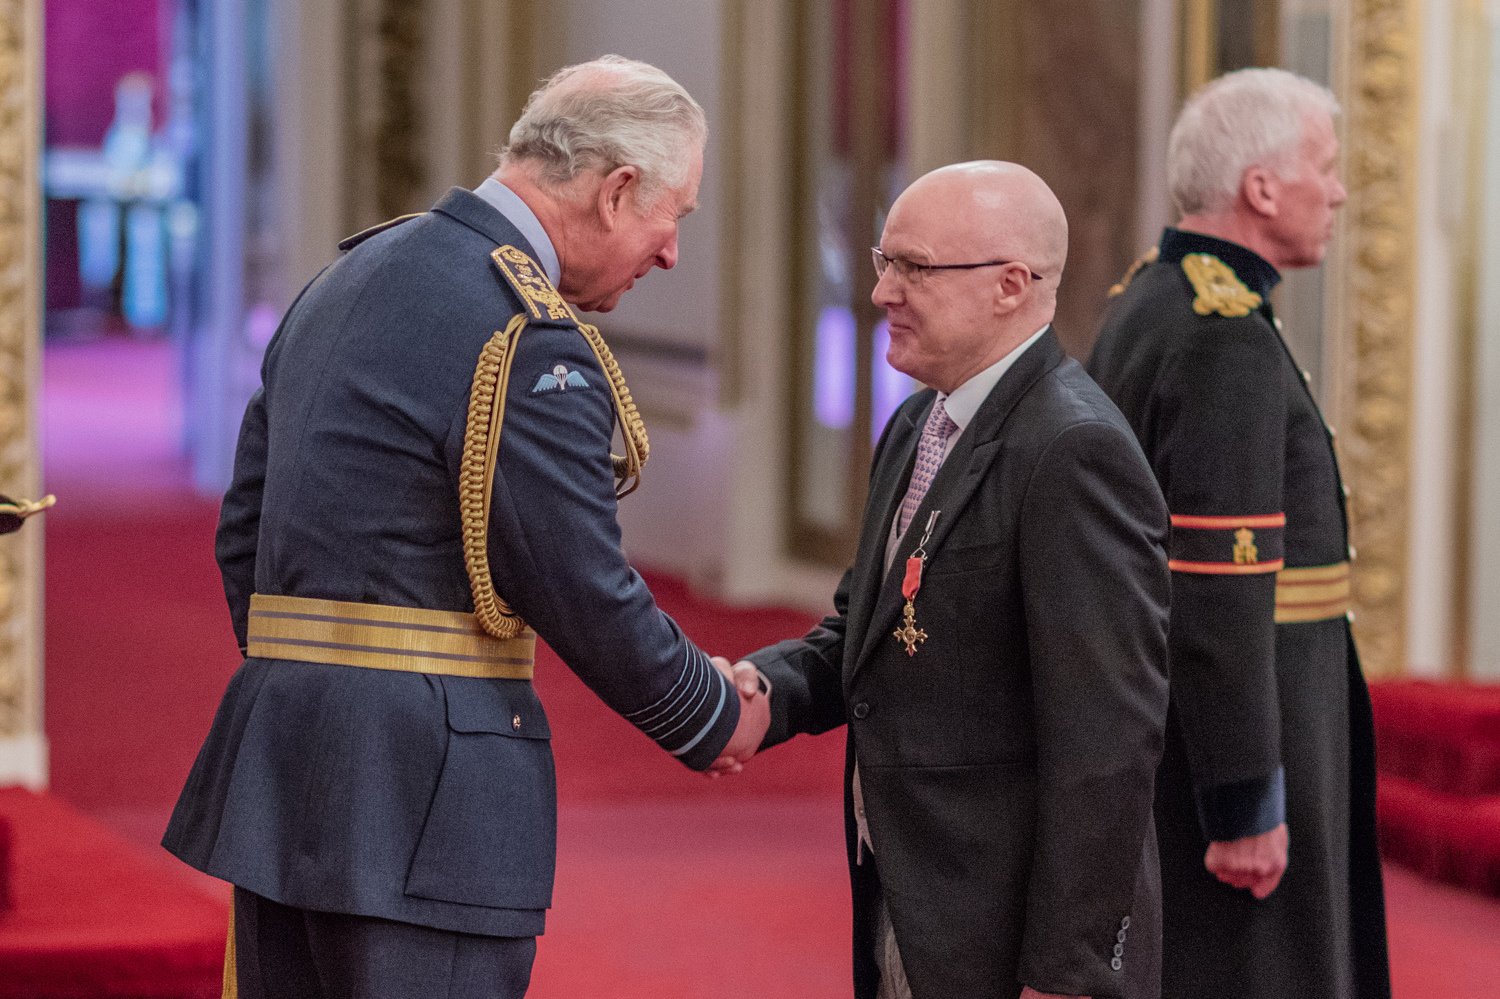 Ebor Academy chief, Richard Ludlow, collects OBE from Prince Charles